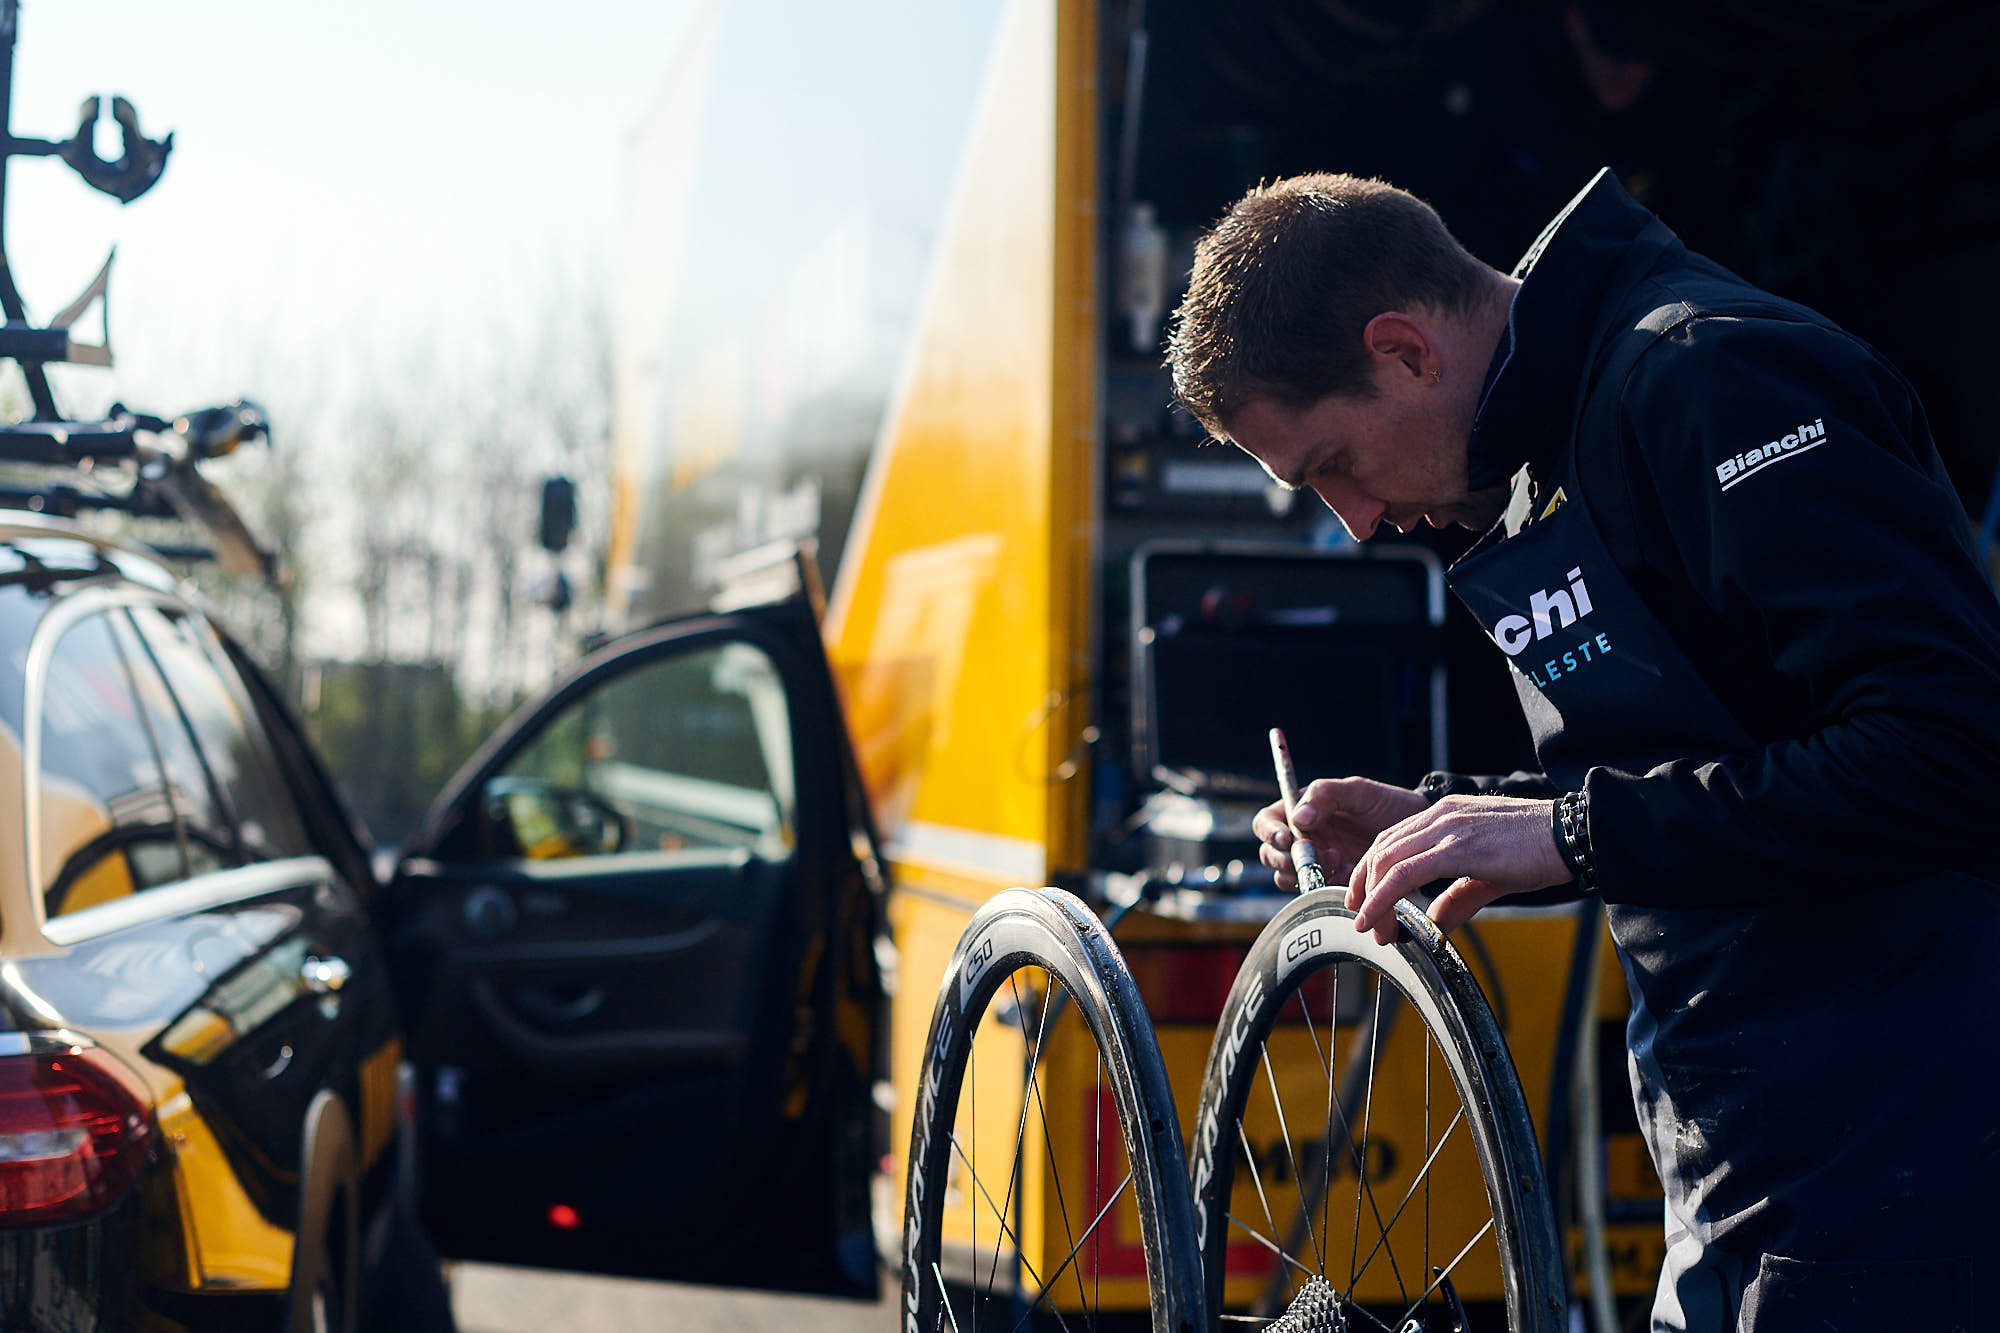 Wout van Aert putting on his cycling shoes